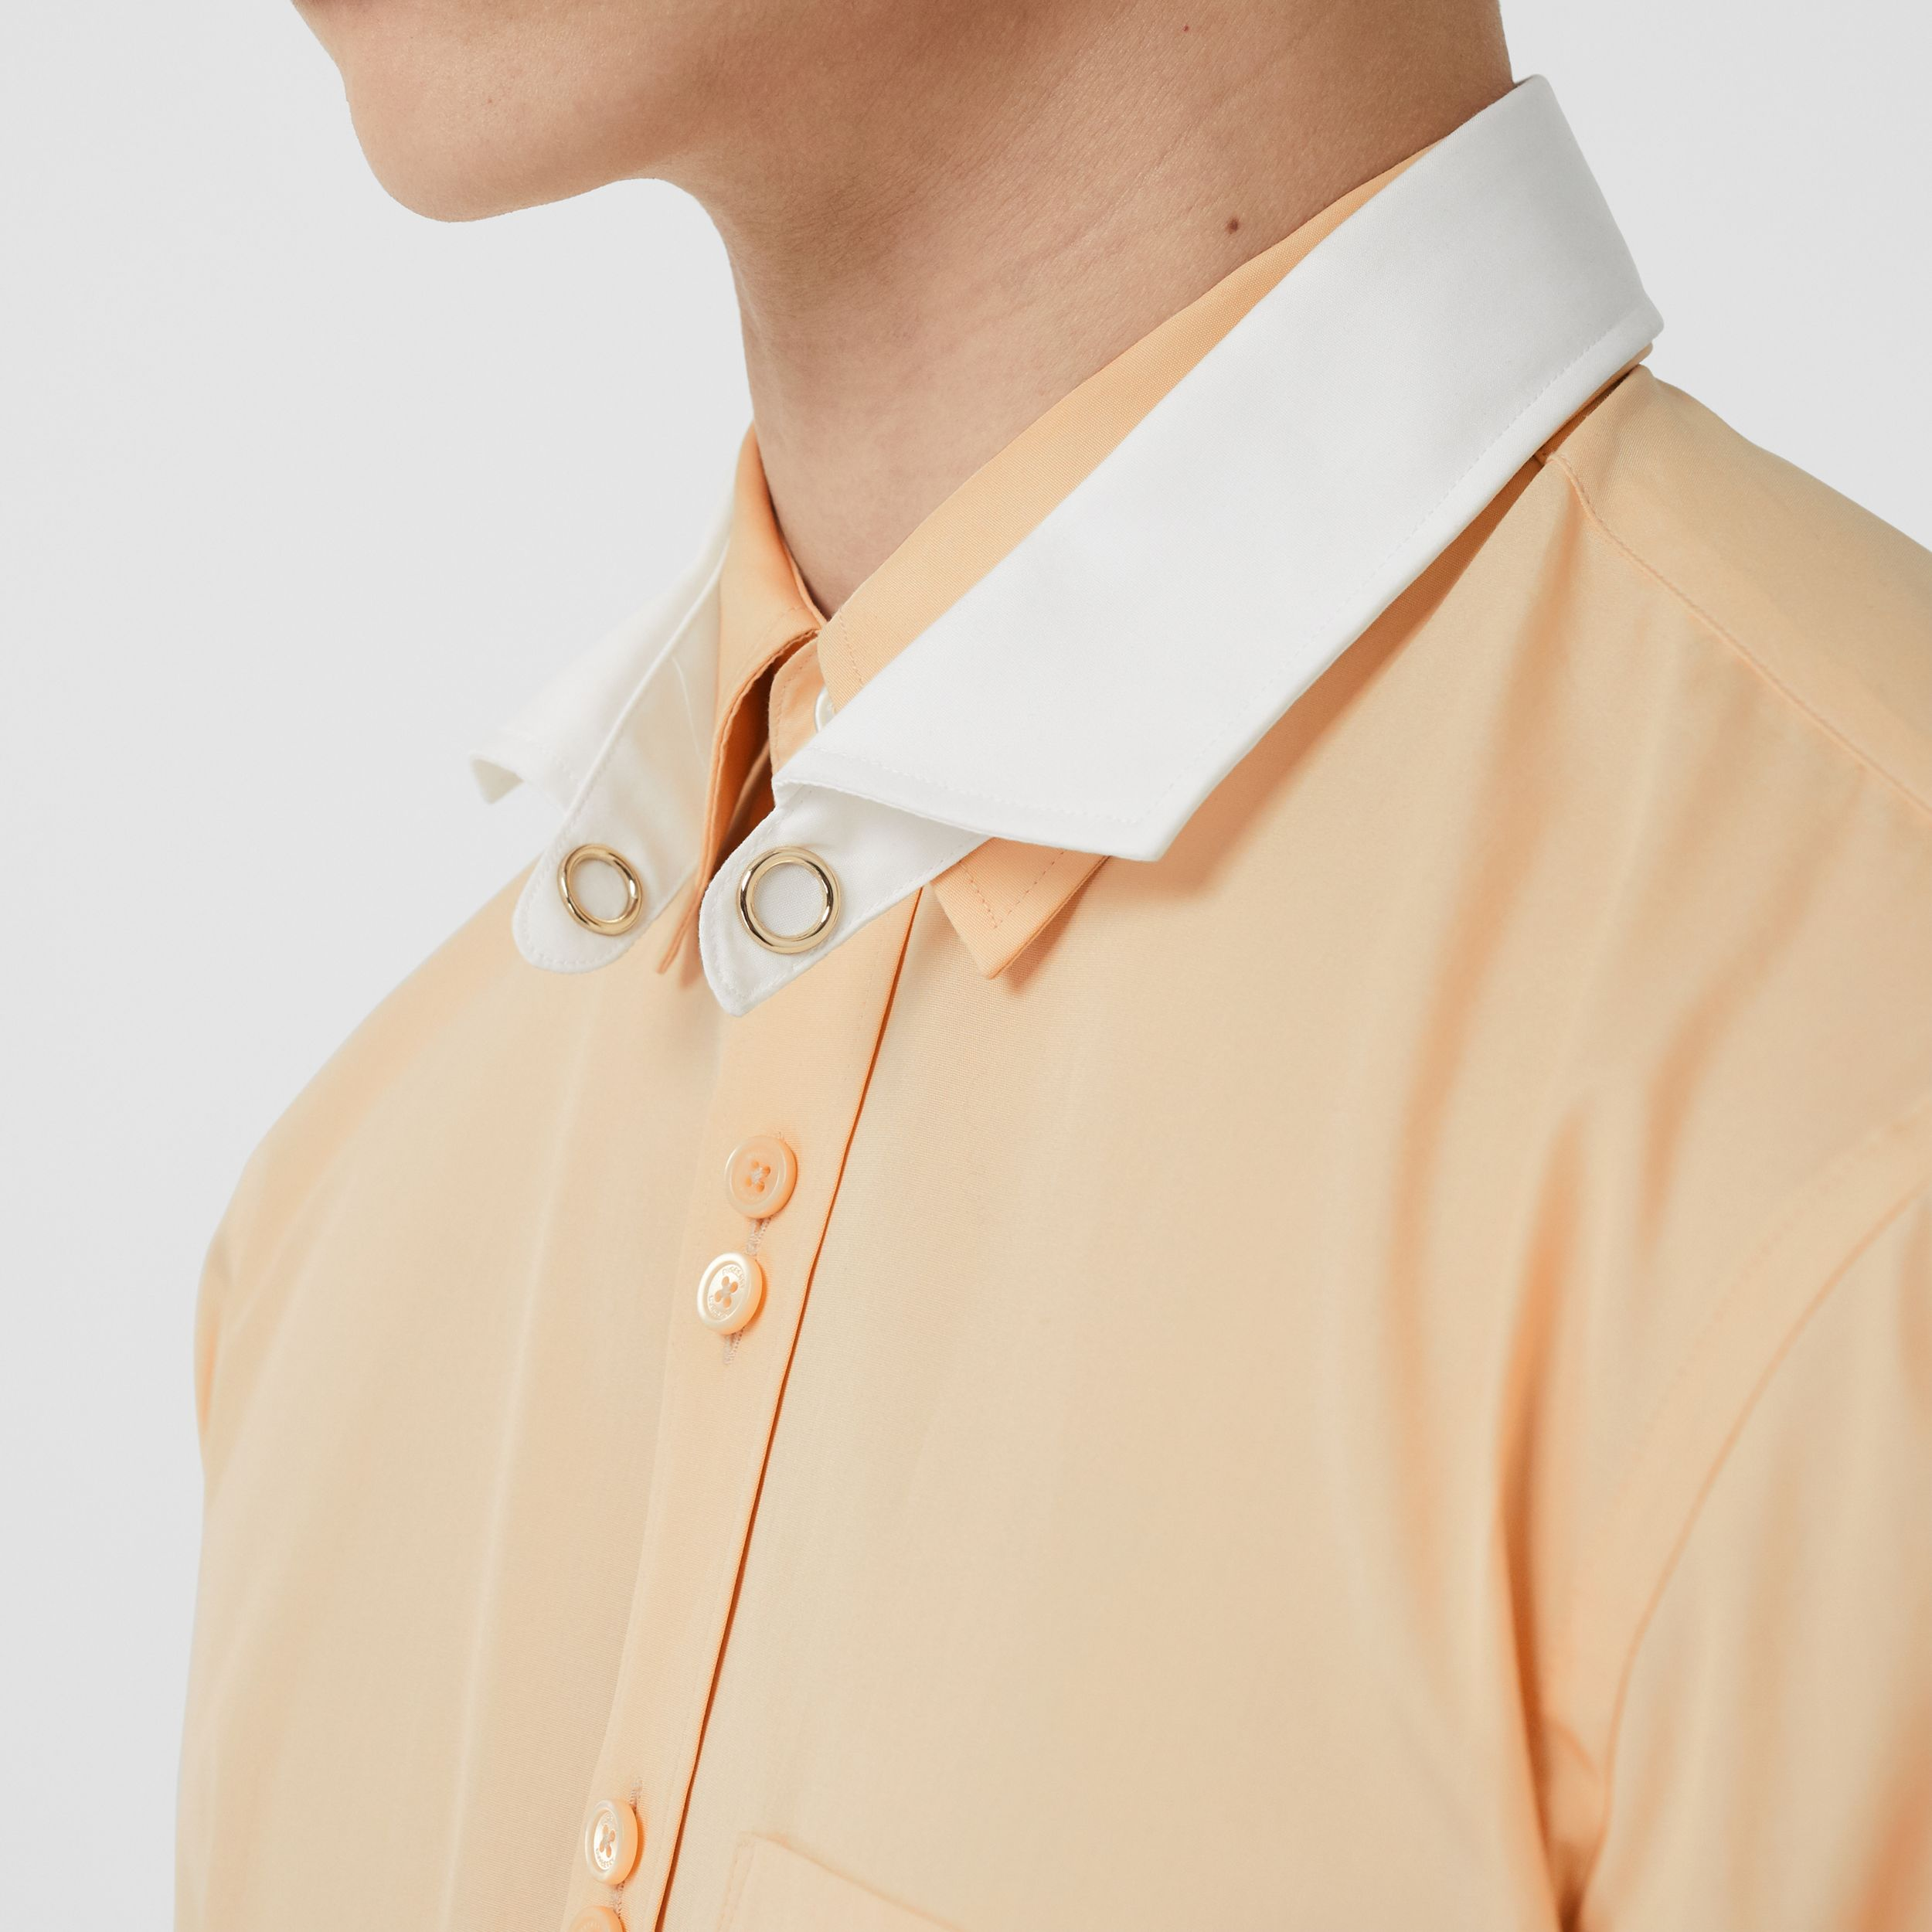 Classic Fit Detachable Collar Cotton Poplin Shirt in Buttermilk - Men | Burberry - 2